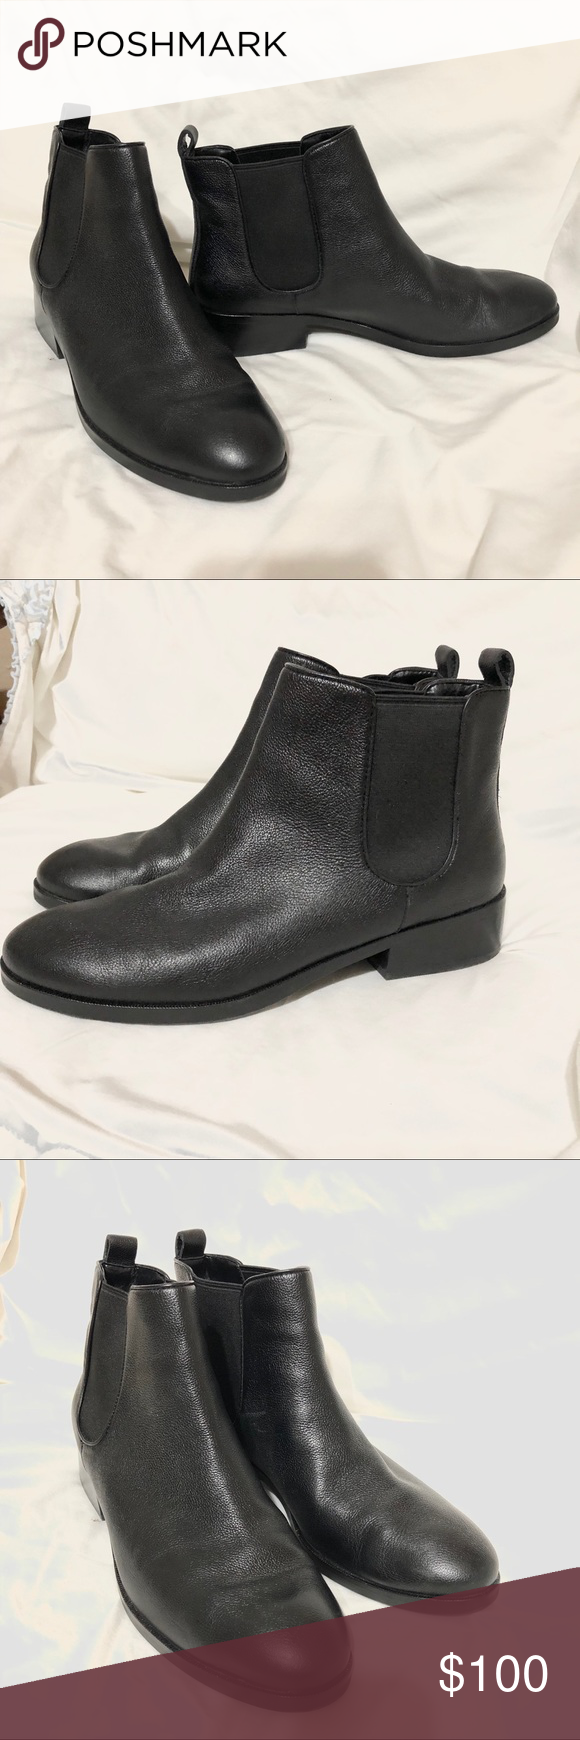 e880afddf27 Cole Haan black Leather booties size 8.5 Cole Haan Landsman Bootie Black  Women Size 8.5 Black